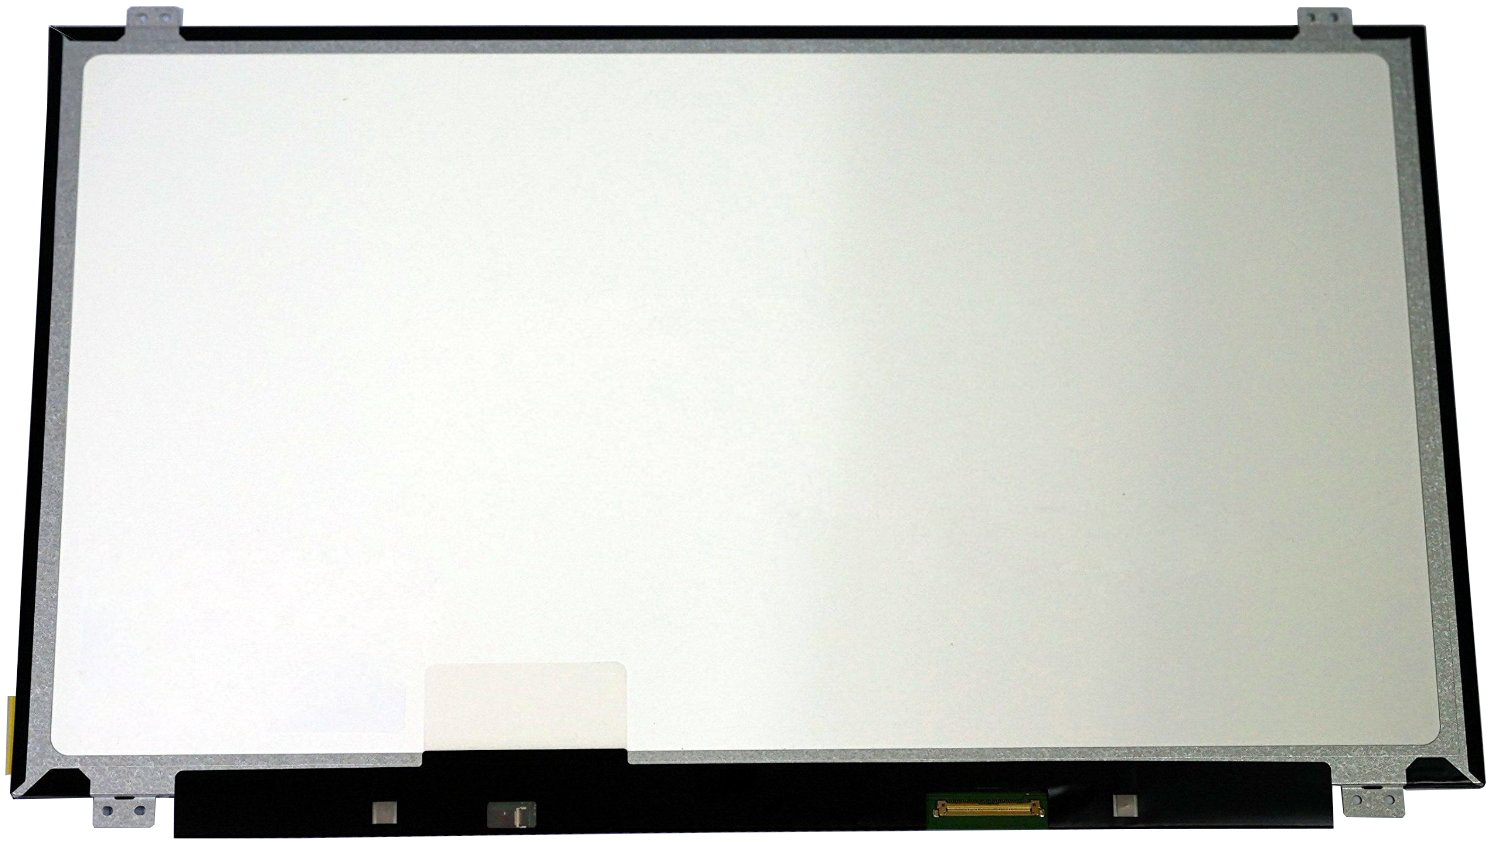 QuYing Laptop LCD Screen for Acer Aspire V5-551G V5-551 V5-531G V5-531 V5-571 V5-571G ZR7 PEW71 (15.6 inch 1366x768 40pin N) quying laptop lcd screen for acer extensa 5235 as5551 series 15 6 inch 1366x768 40pin tk